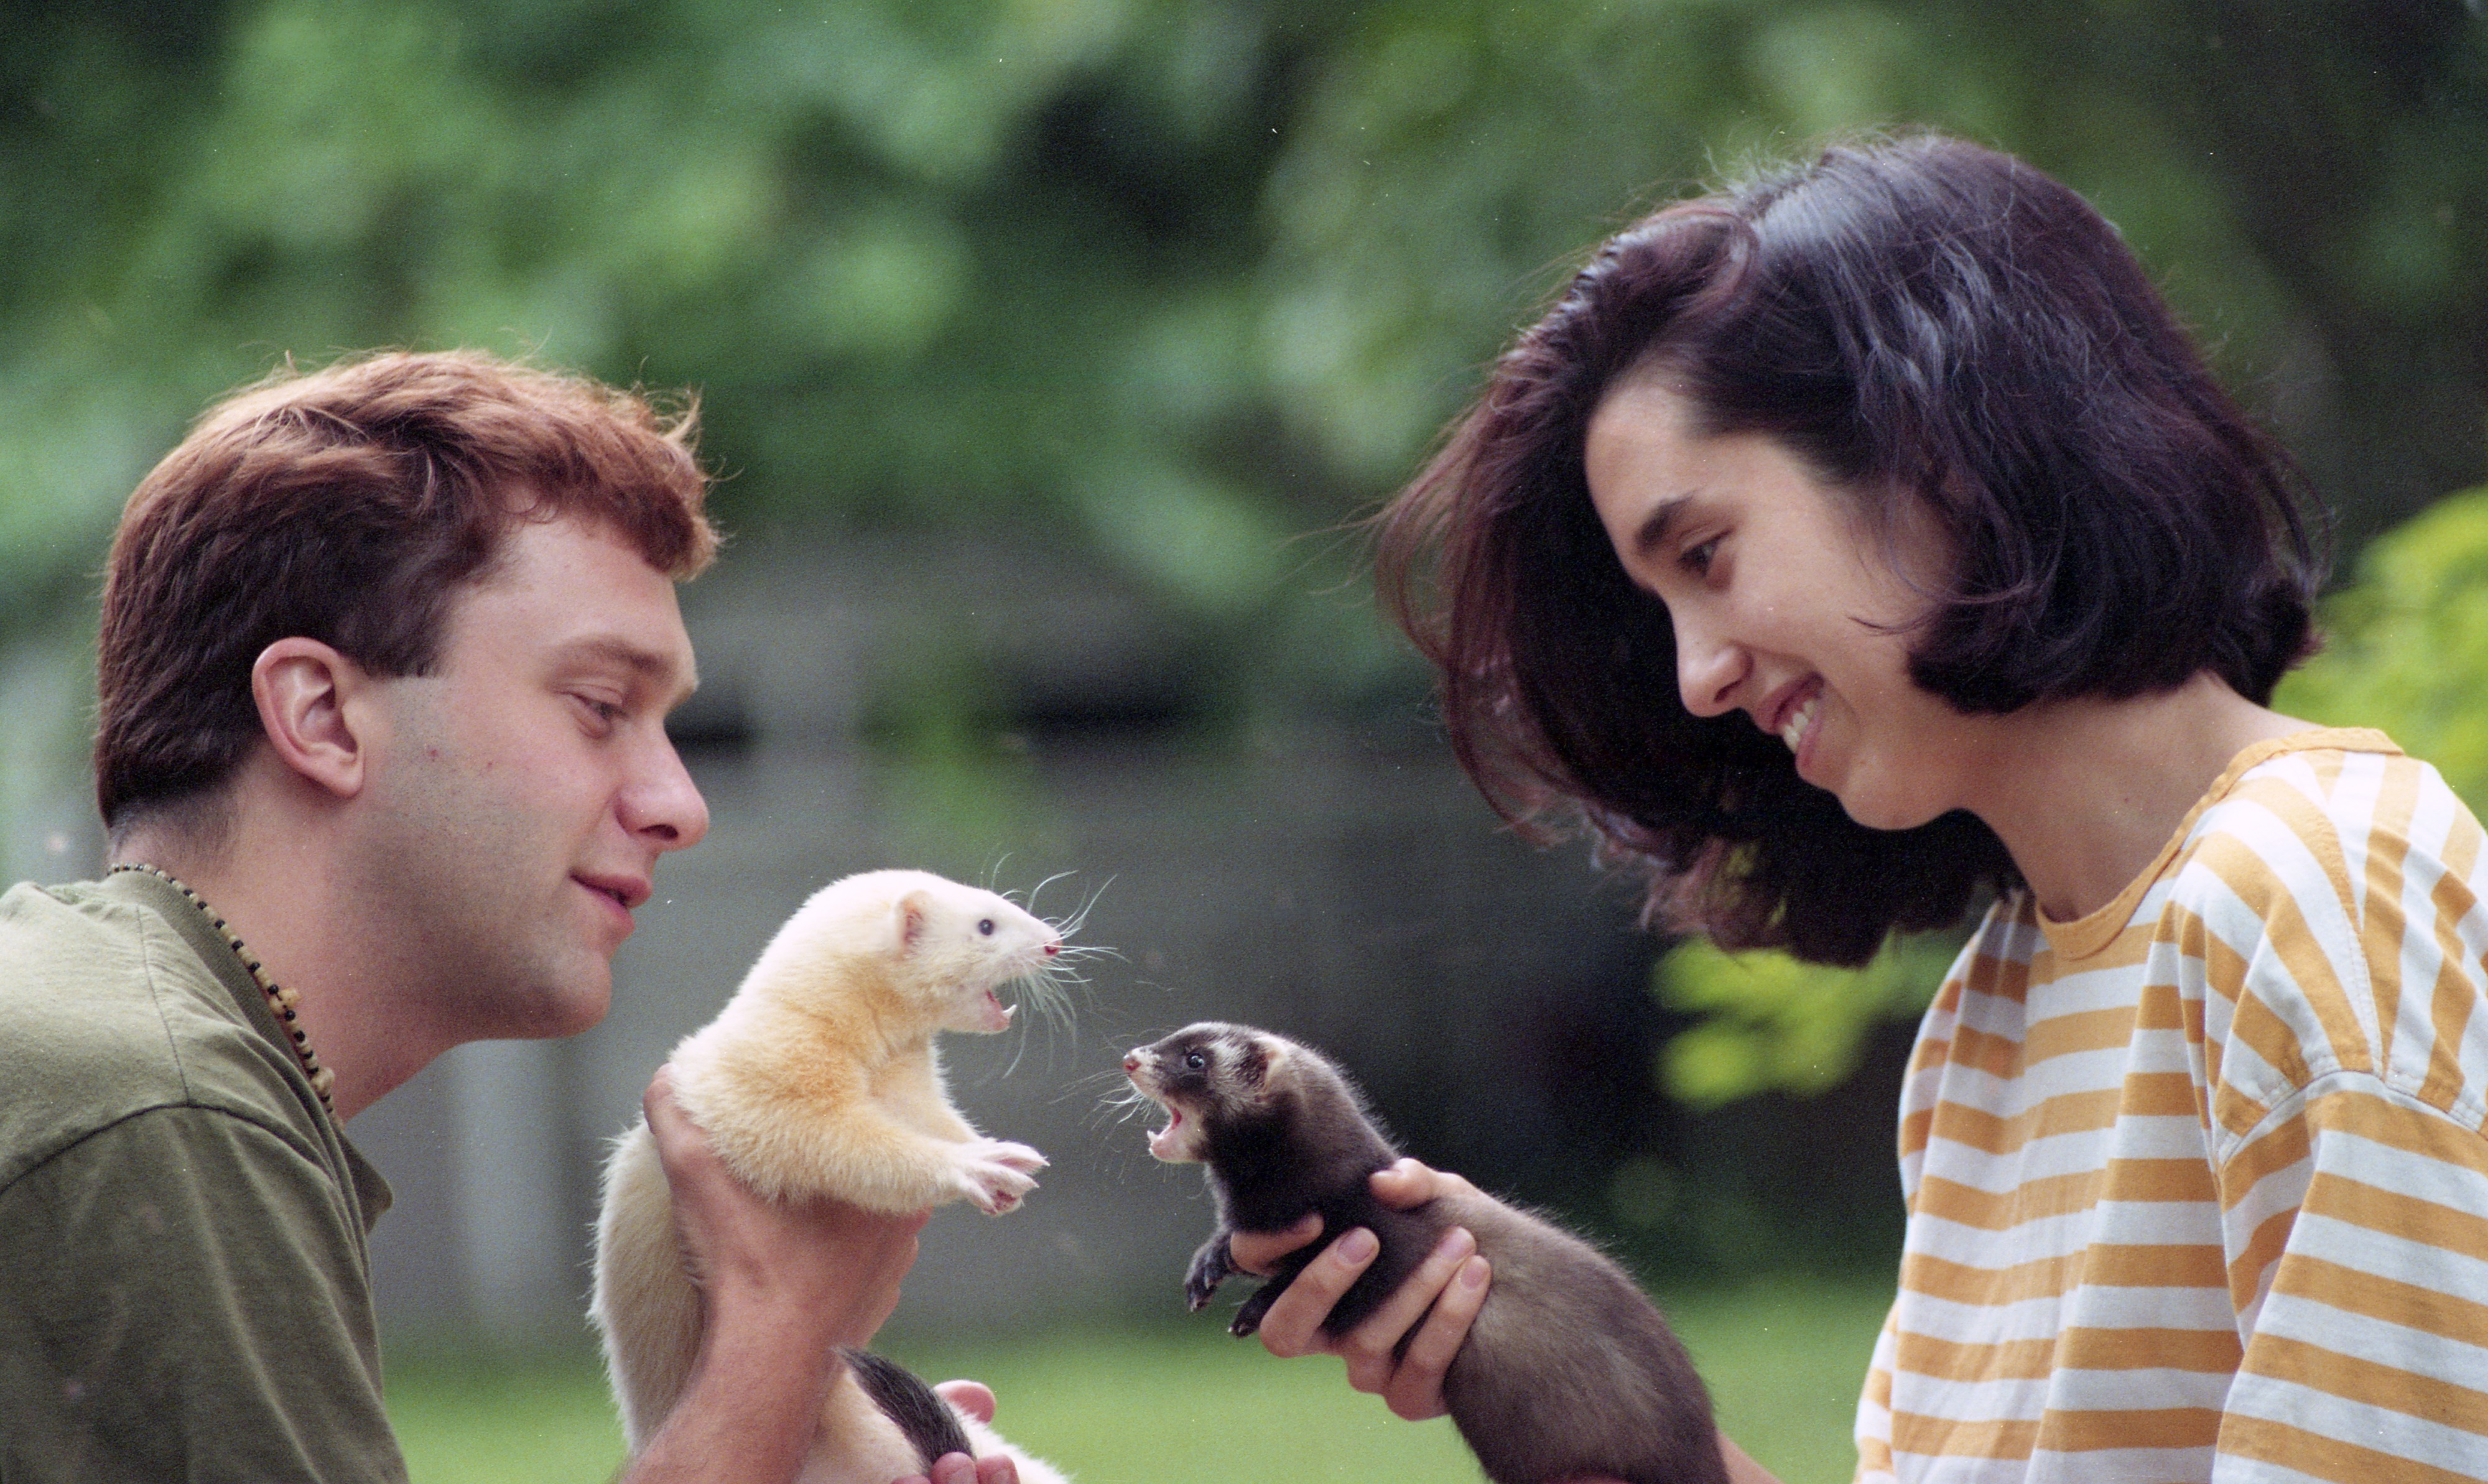 Christopher Ingersoll, Melissa Litwicki, & Their Pet Ferrets, July 1995 image